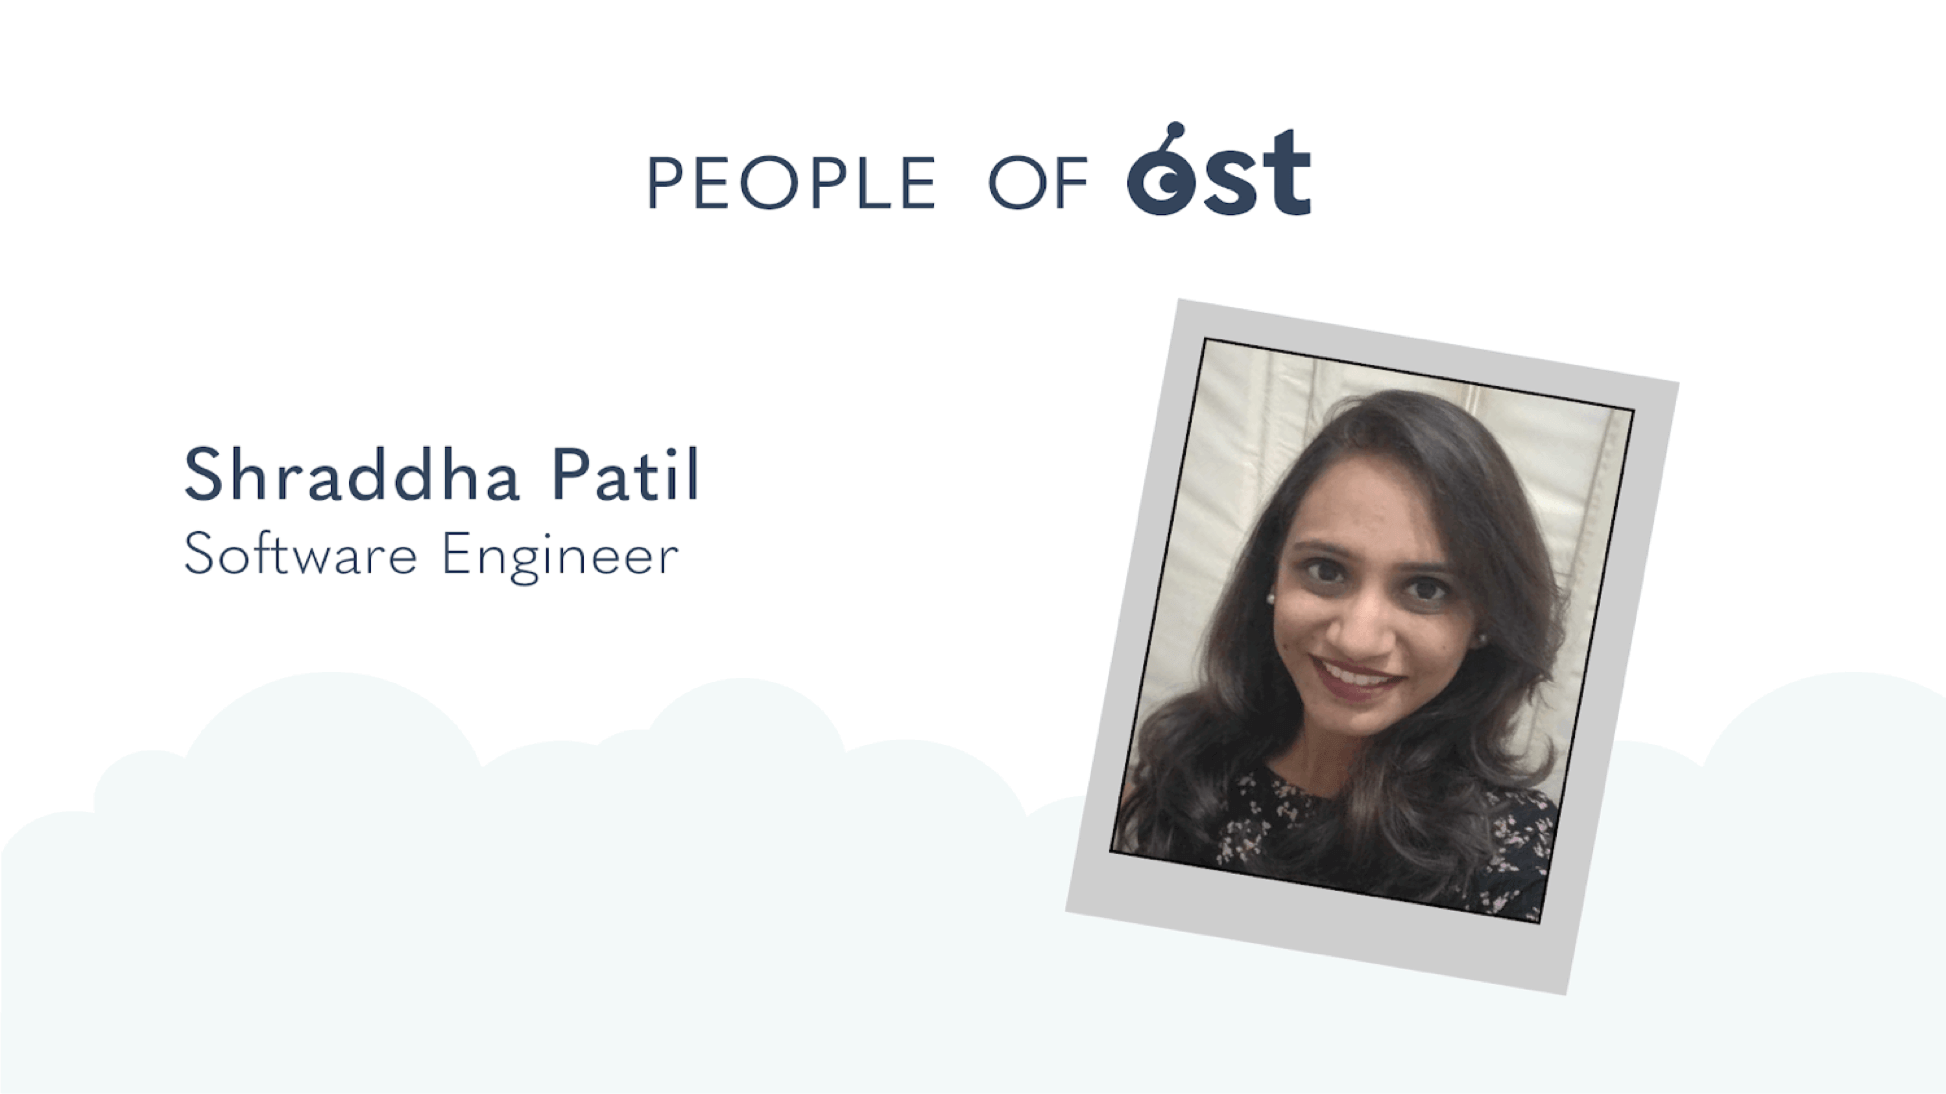 People of OST: Shraddha Patil, Software Engineer